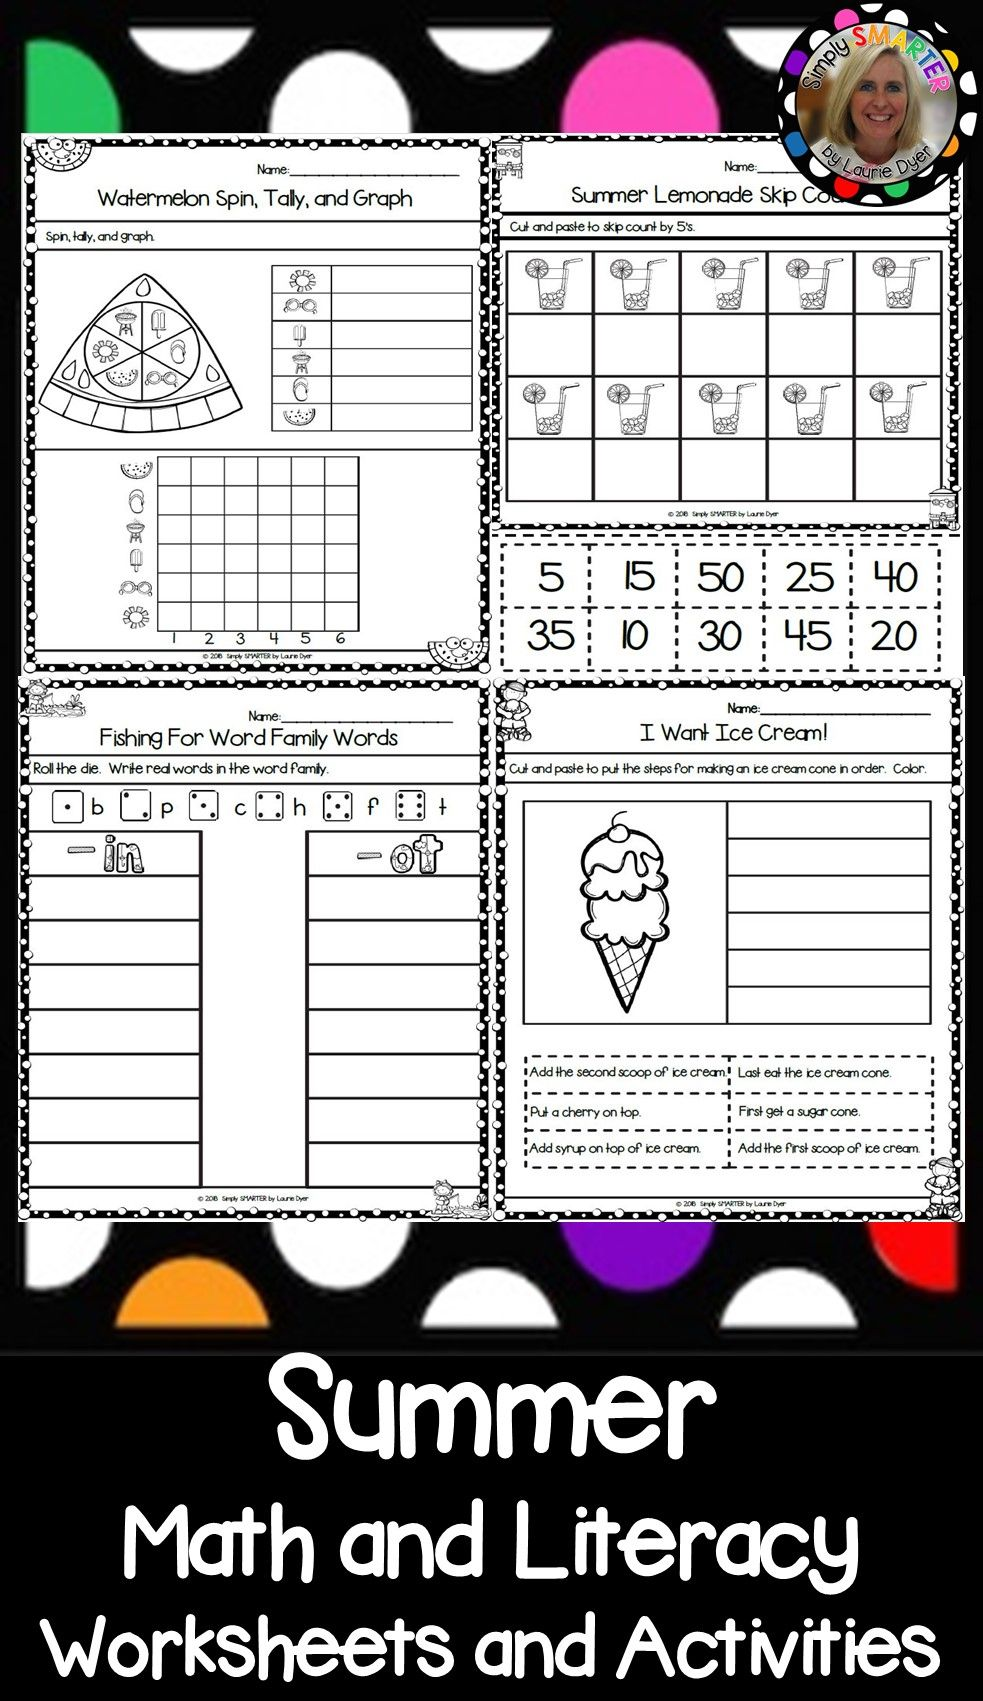 Summer Themed Kindergarten Math And Literacy Worksheets And